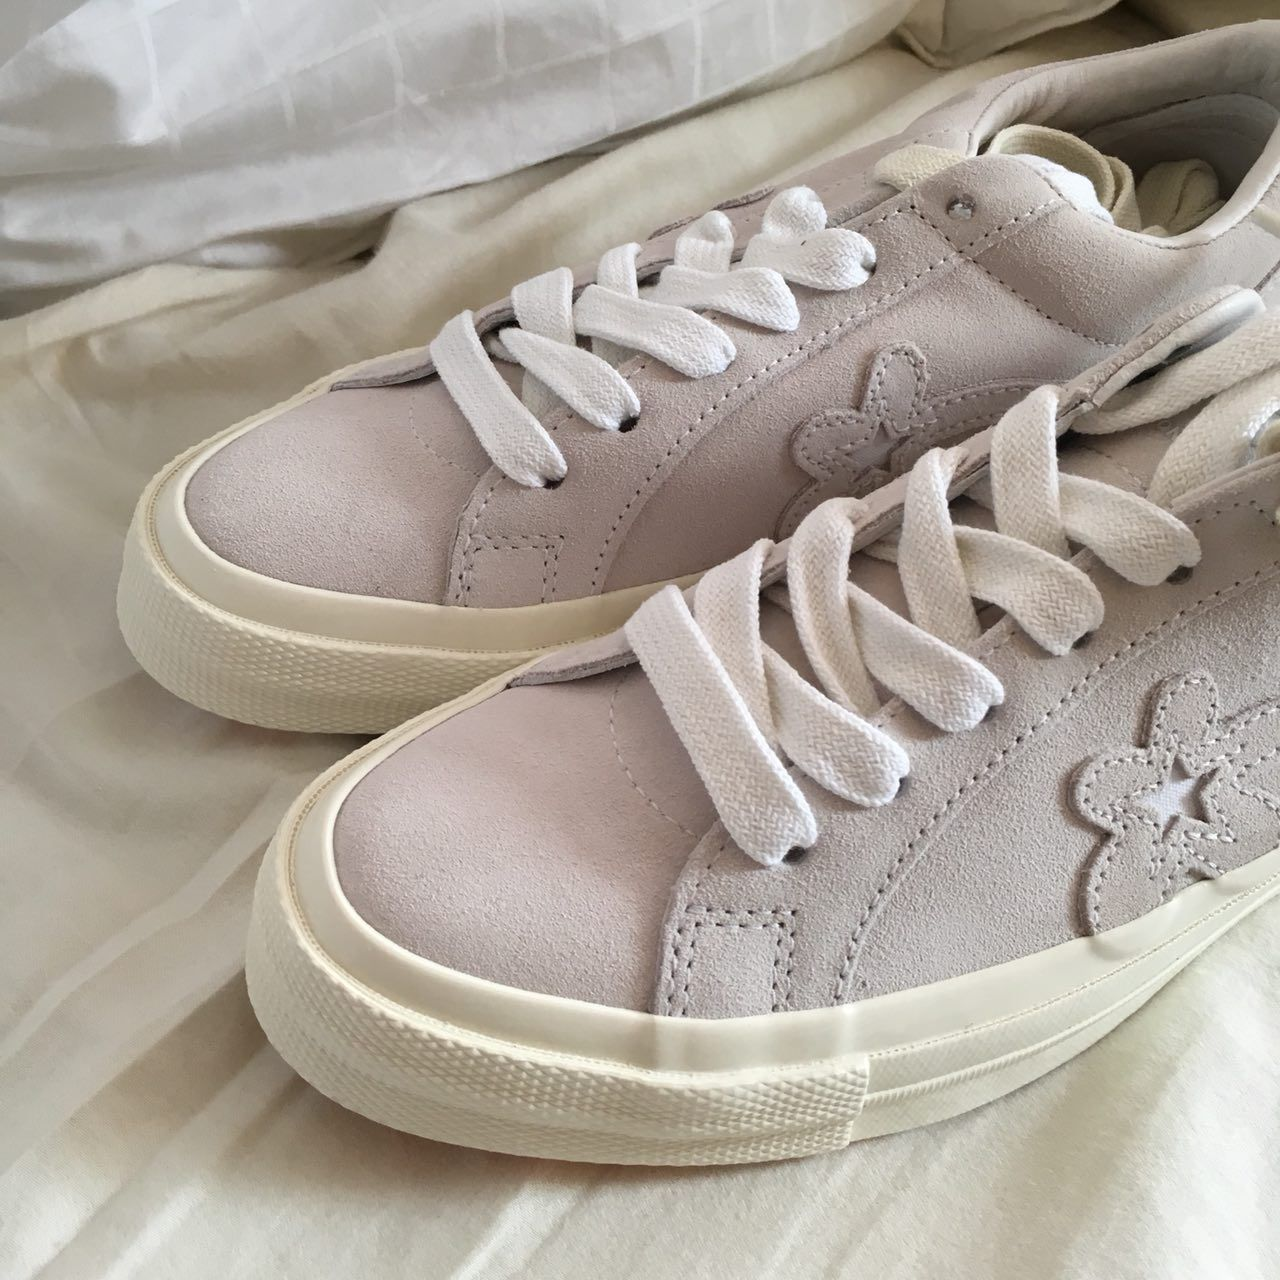 Pinterest Reflxctor Tyler The Creator X Converse Collaboration Red White Blue Green Black Release Golf Le Fleur Shoes Golf Fashion Me Too Shoes